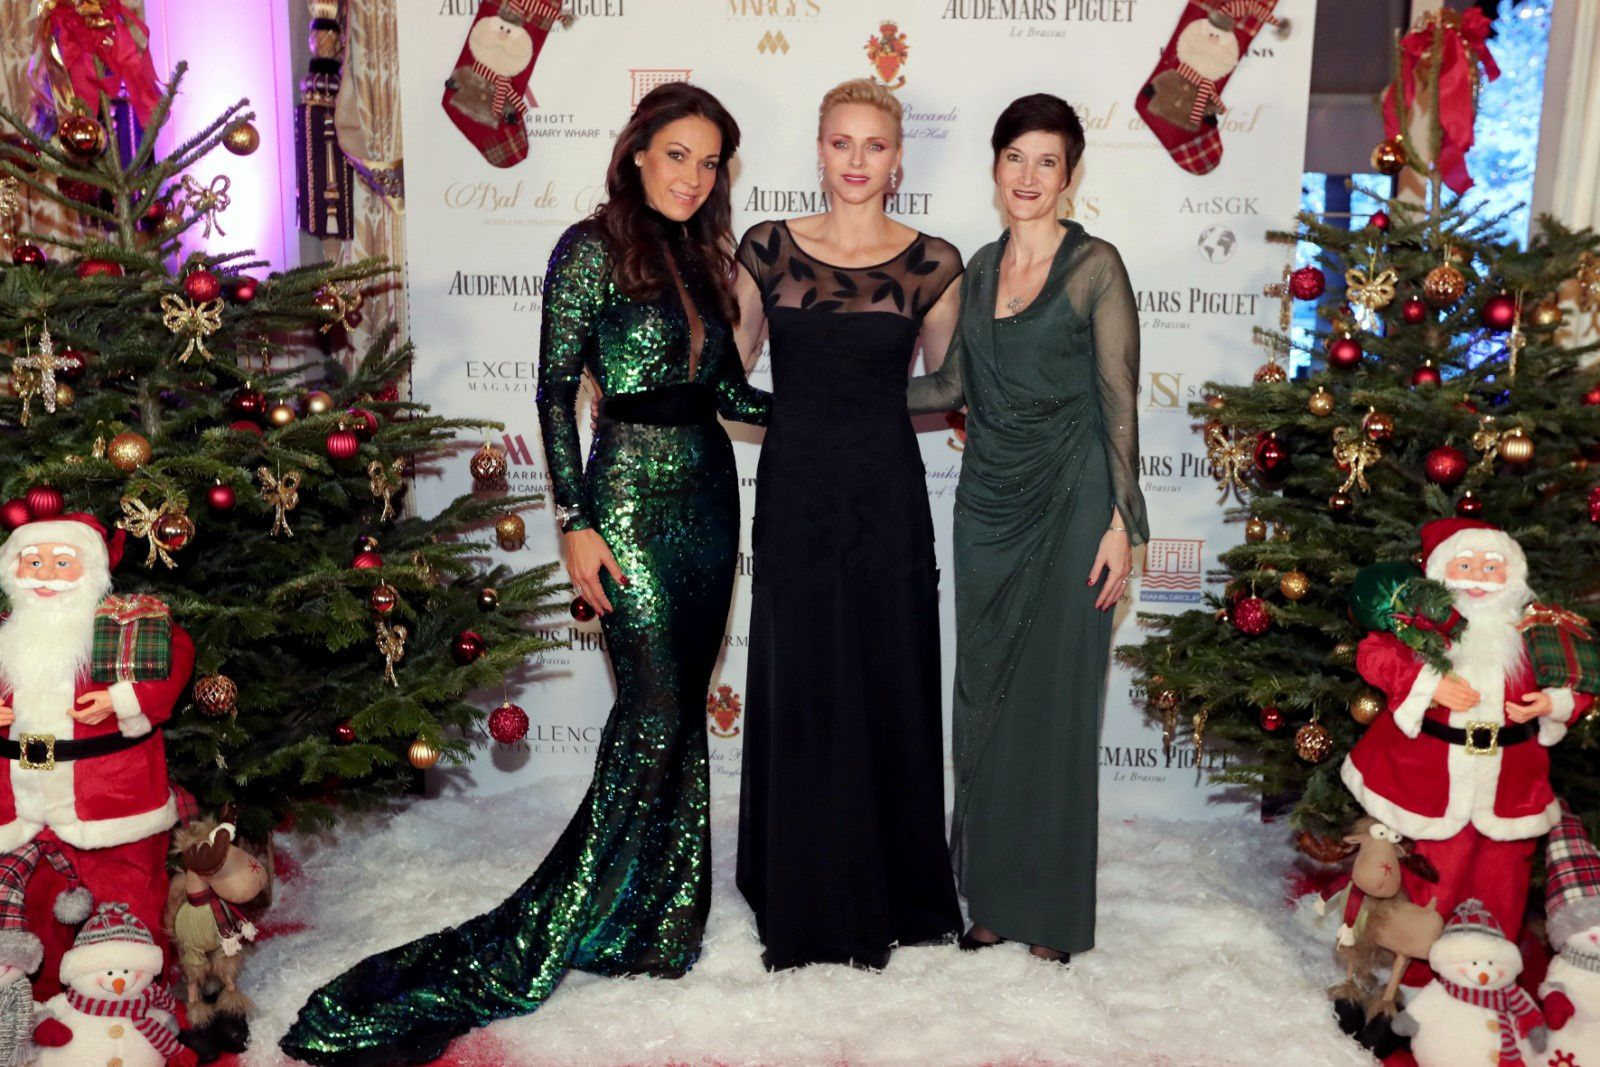 Sandrine Knoell-Garbagnati/dress Ali Karoui, H.S.H Princess Charlène,  Agnès Falco, General Secretary of the Princess Charlene of Monaco Foundation ©LaurentCialvadini